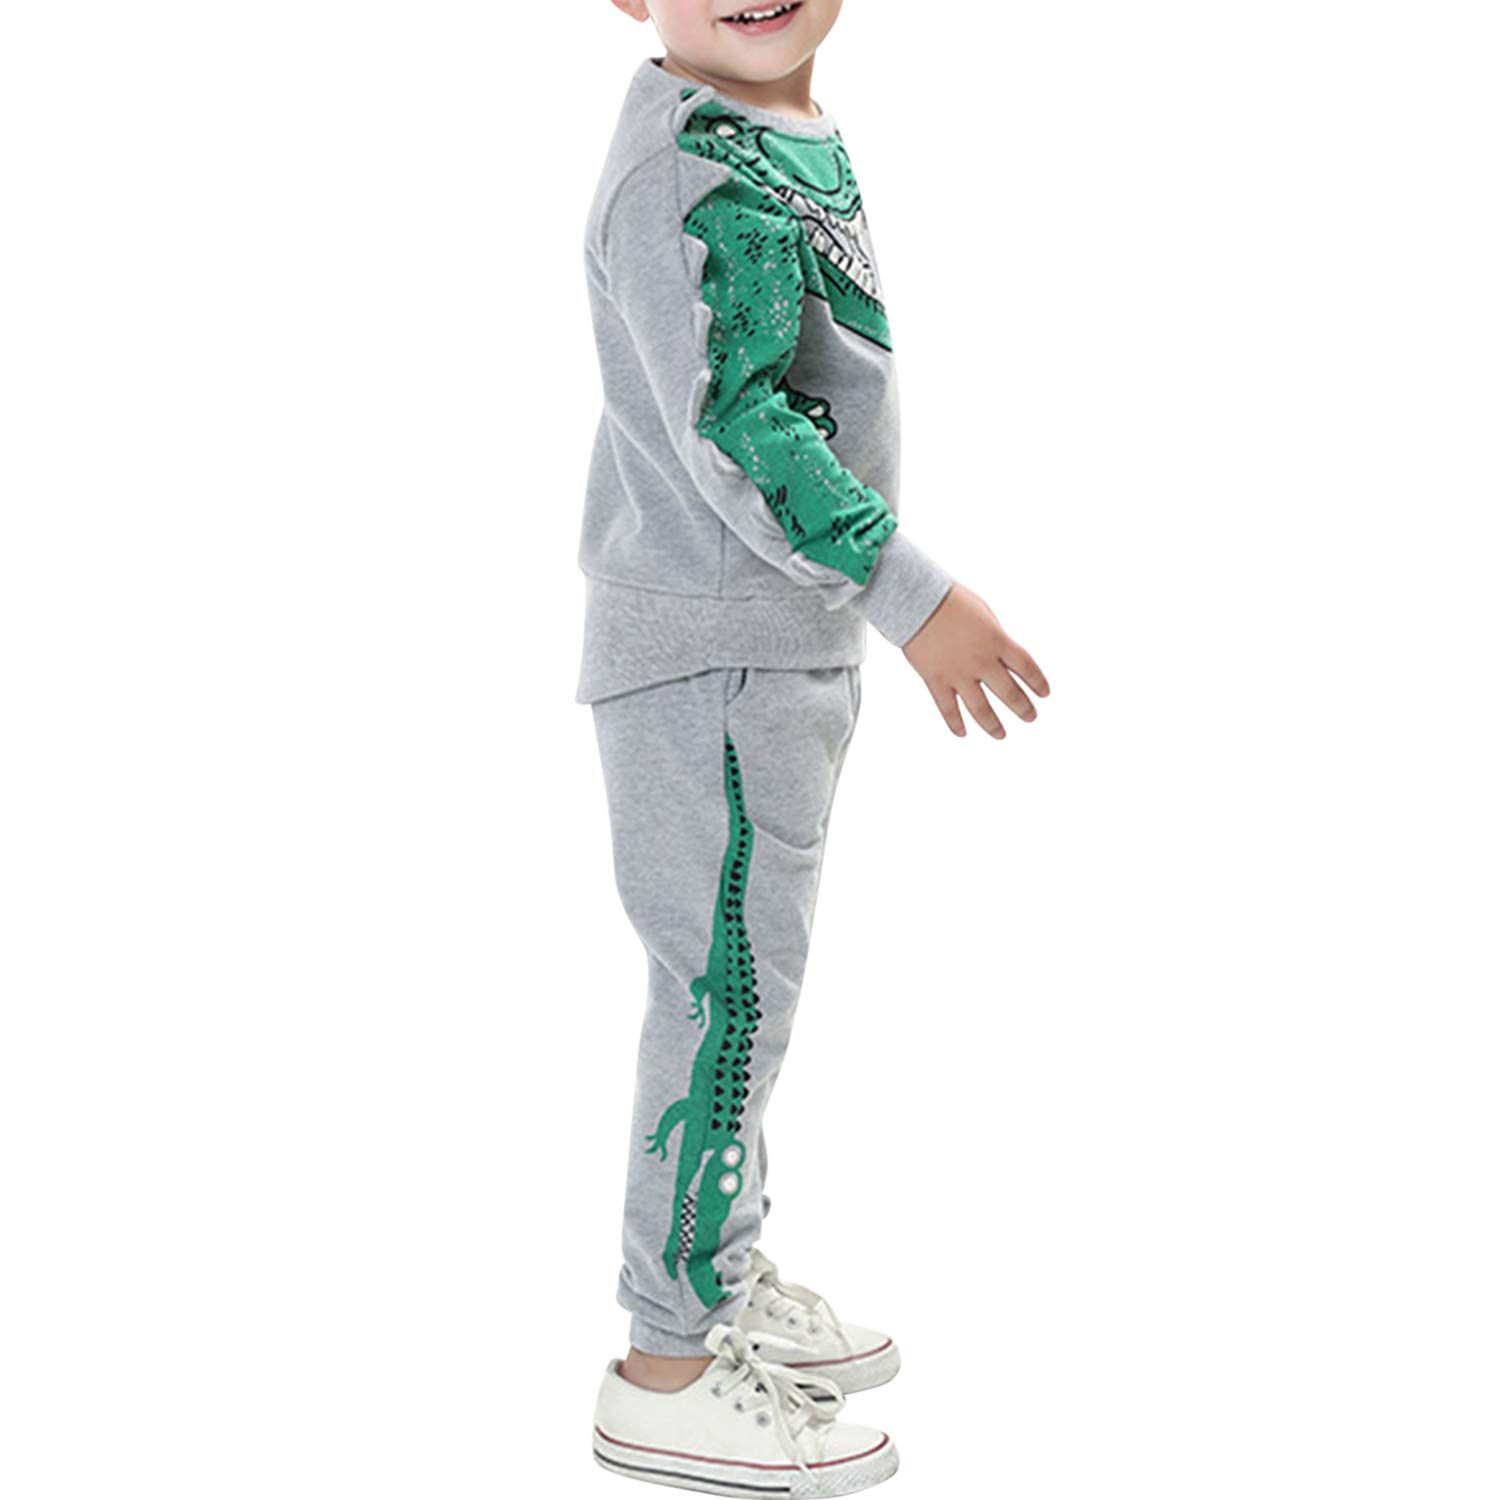 De feuilles Kids Boys Long Sleeve Dinosaur Sweatshirt T-Shirt Tops and Pans Trousers Clothes Set Outfit